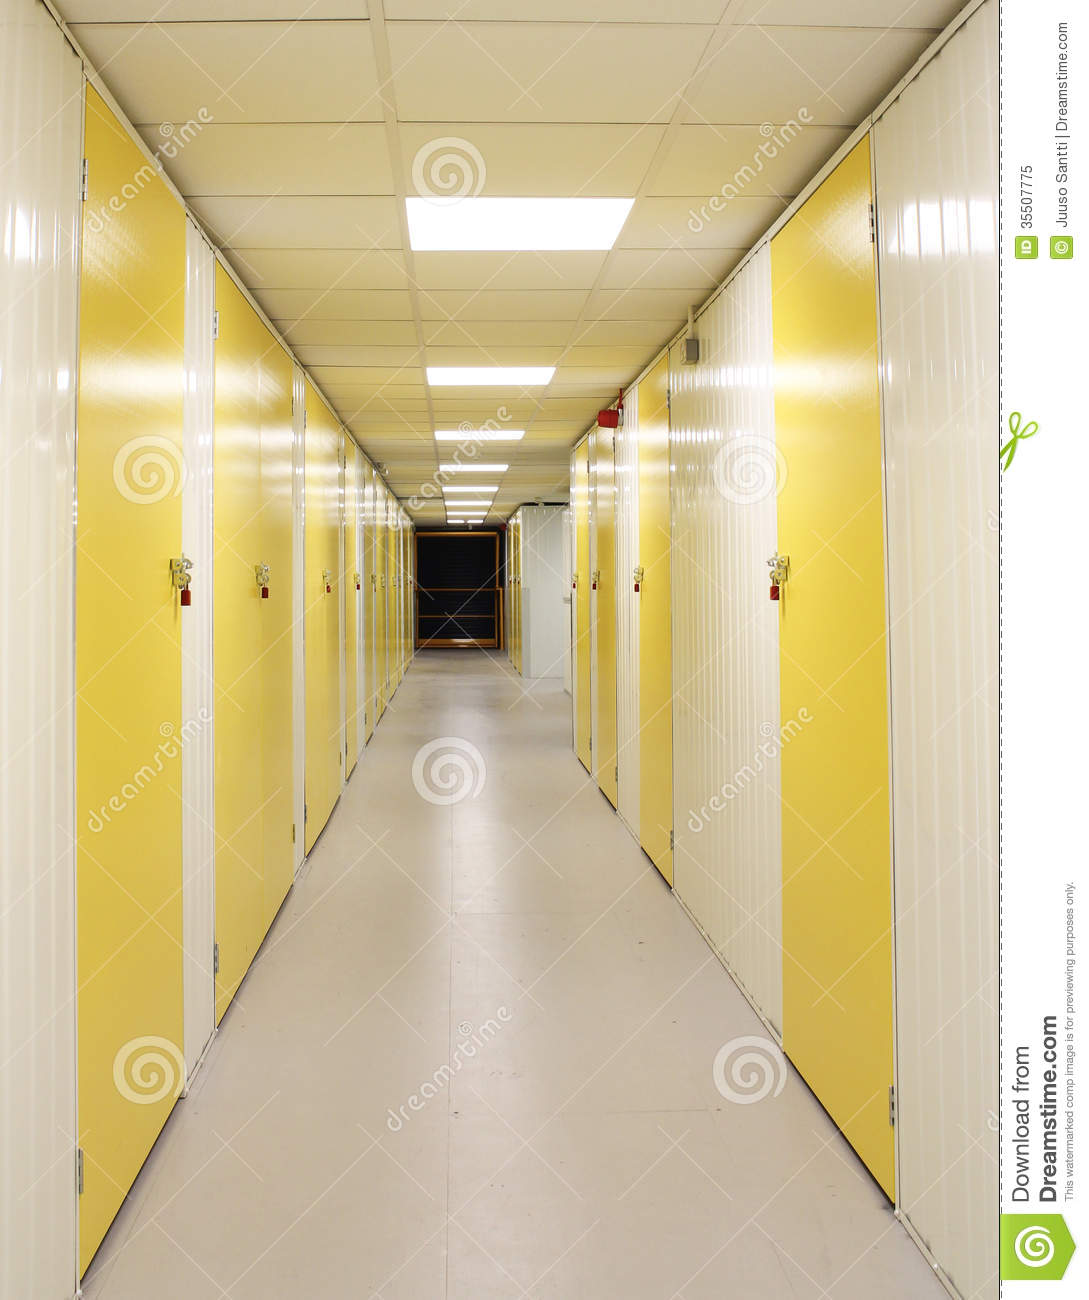 Self Storage Corridor With Yellow Doors Stock Image